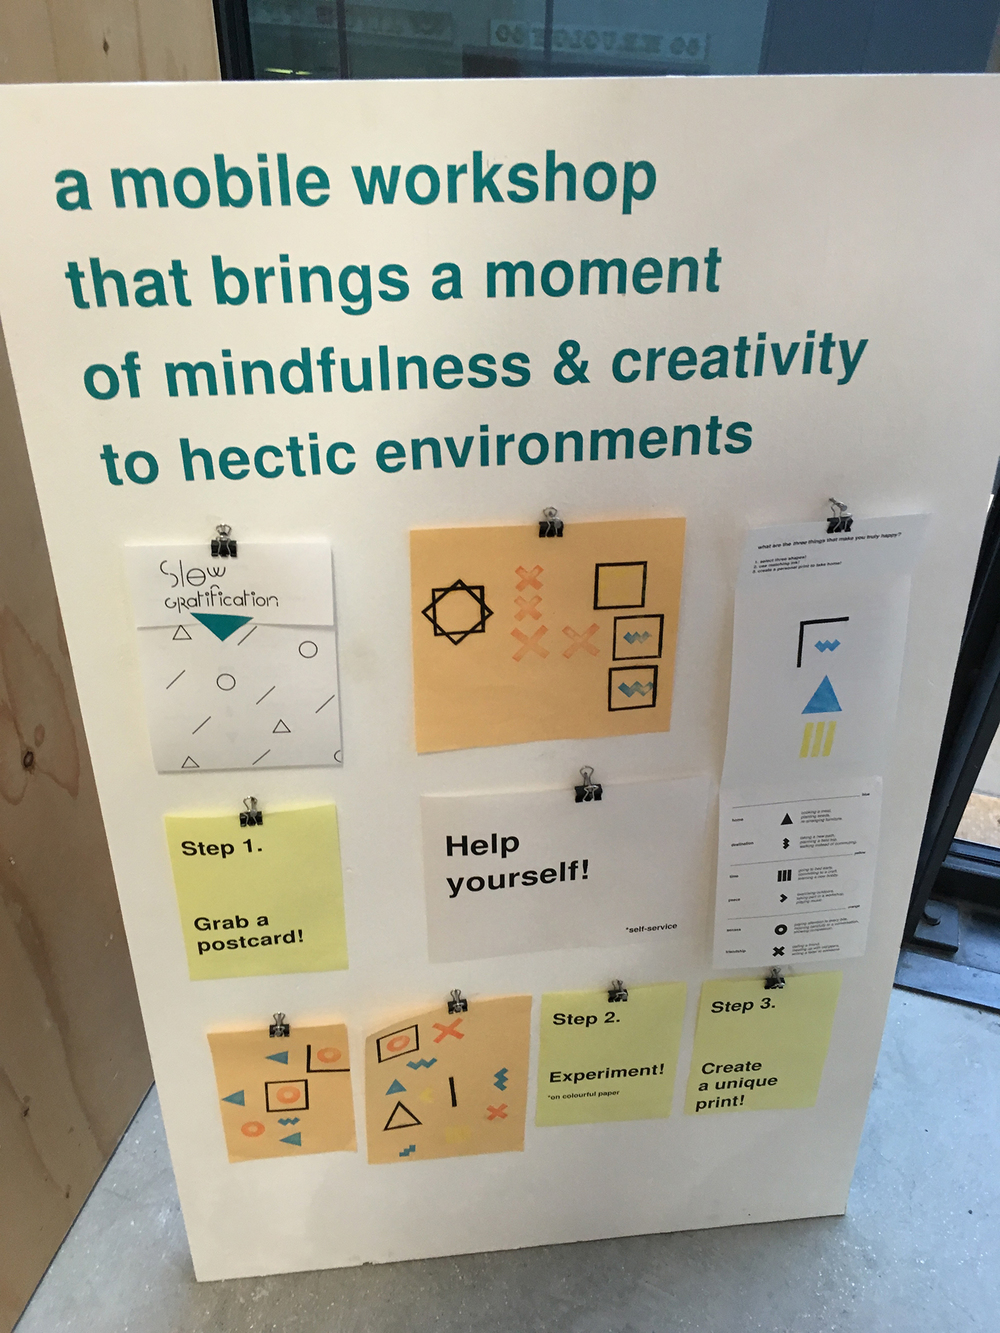 Phillipine Sohet 's clever mobile workshop idea invites mindfulness in a unique way.